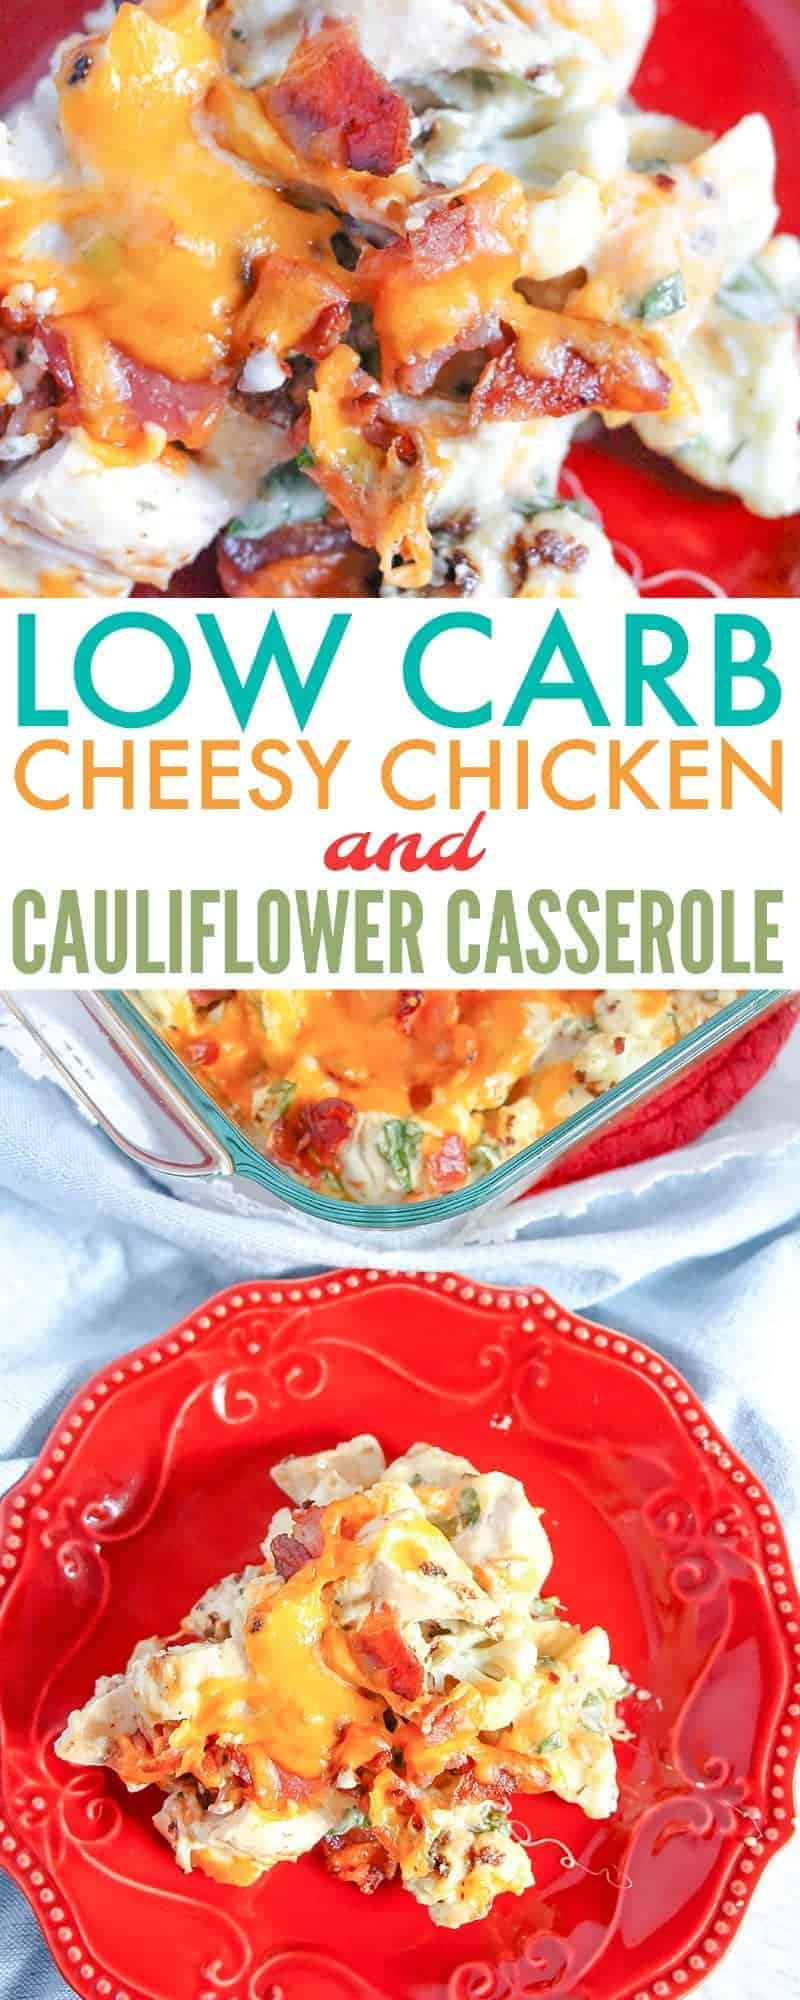 This low carb cheesy chicken and cauliflower casserole recipe will make you forget that you are eating low carb. It's hearty, filling, & best of all, yummy.